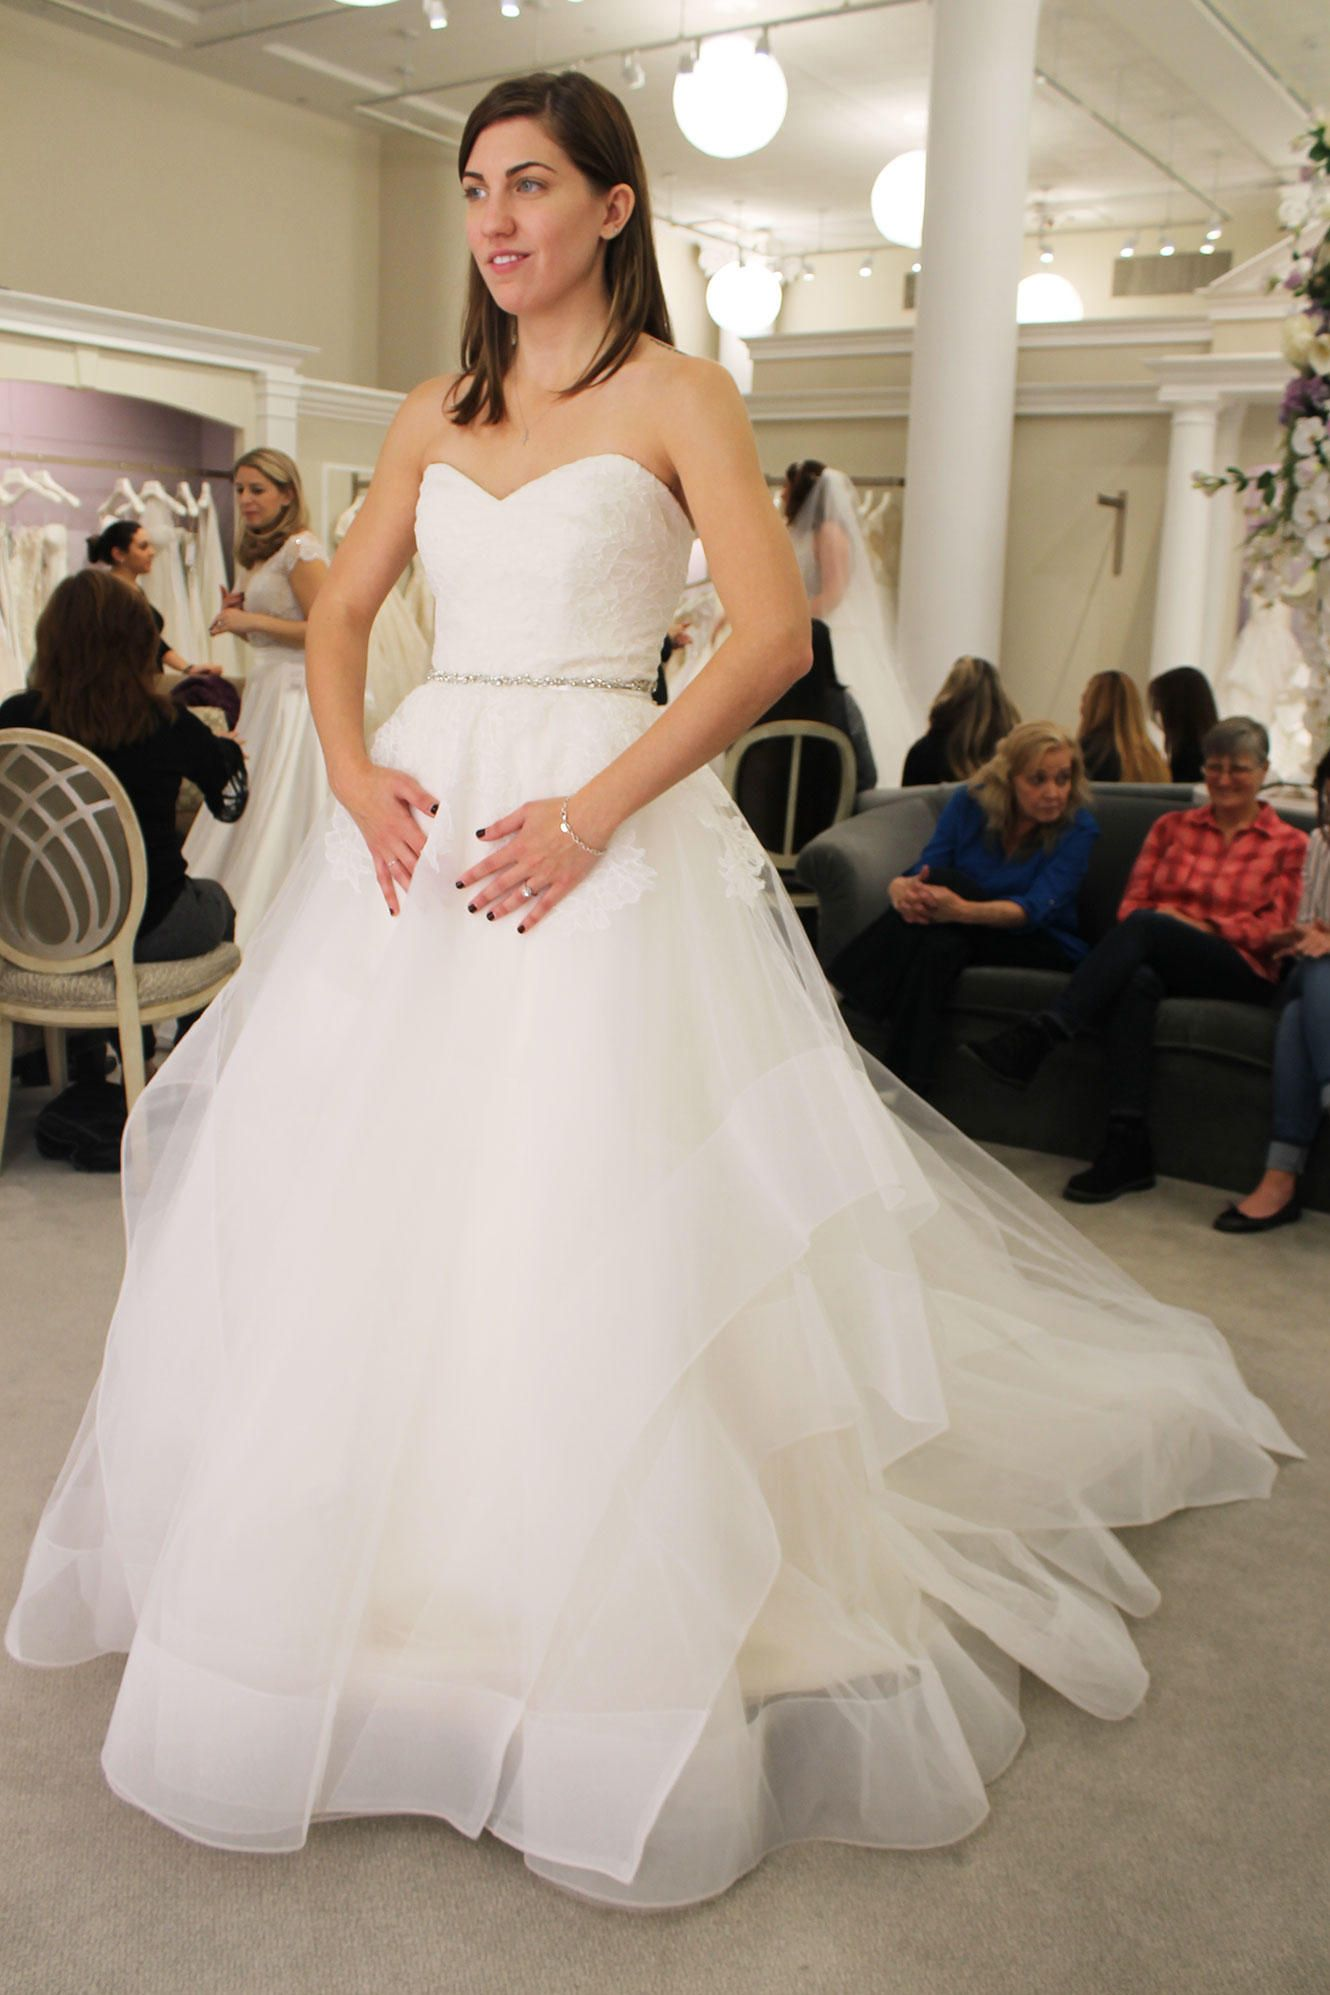 Say Yes to the Dress | Wedding dress ideas | Pinterest | Watch full ...